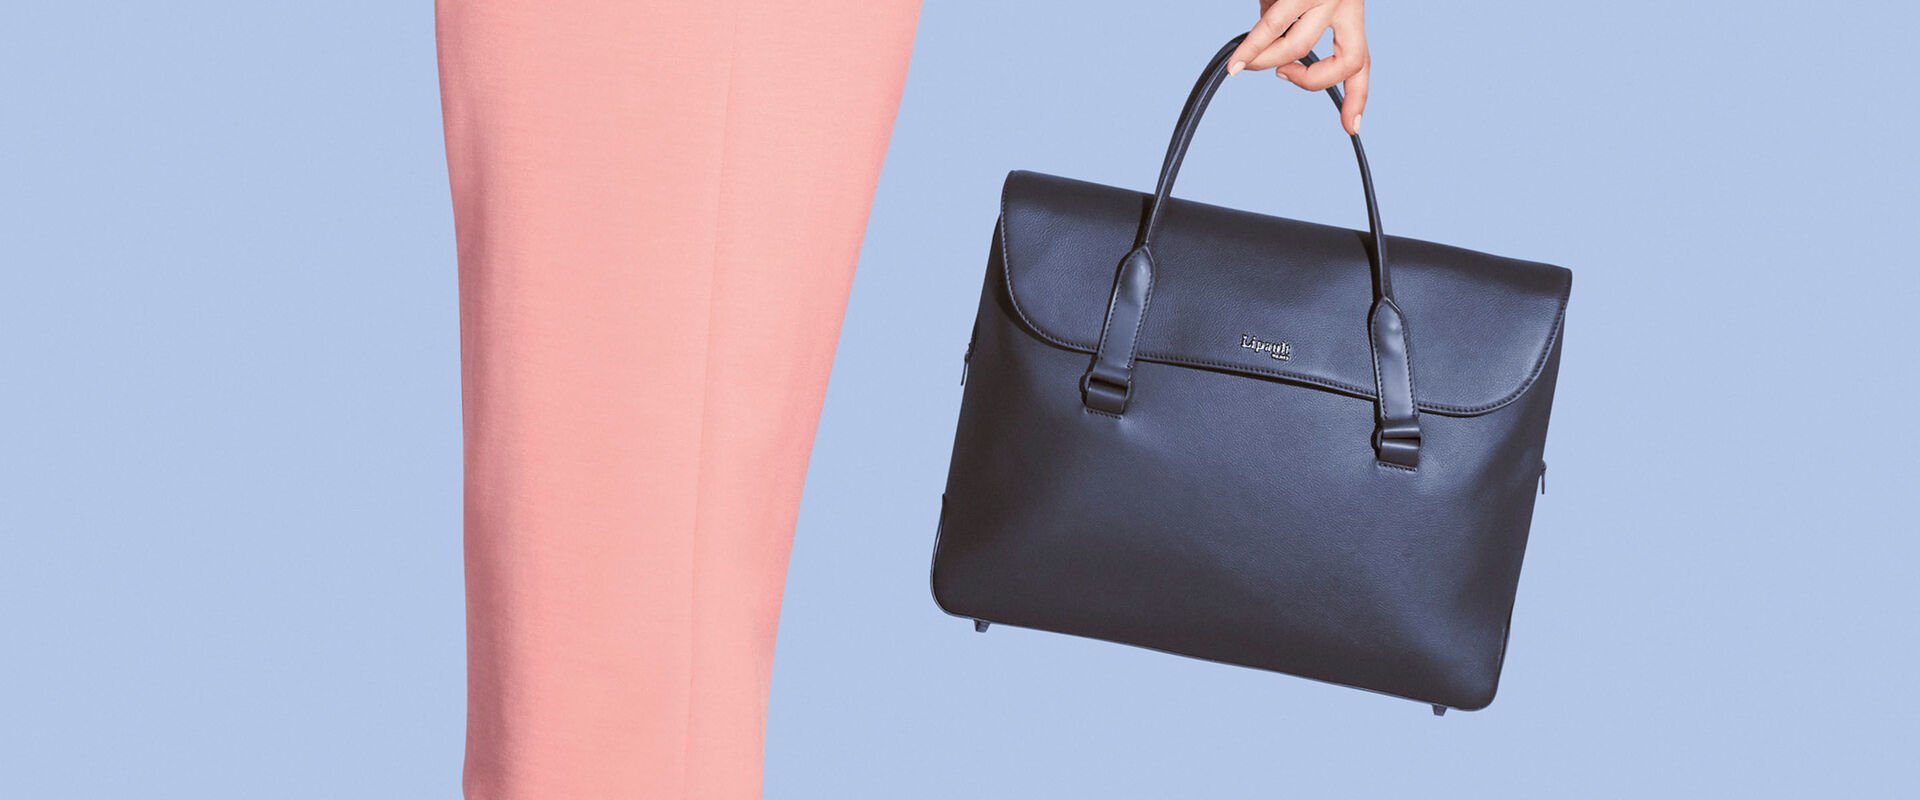 Bags for sale | Lipault